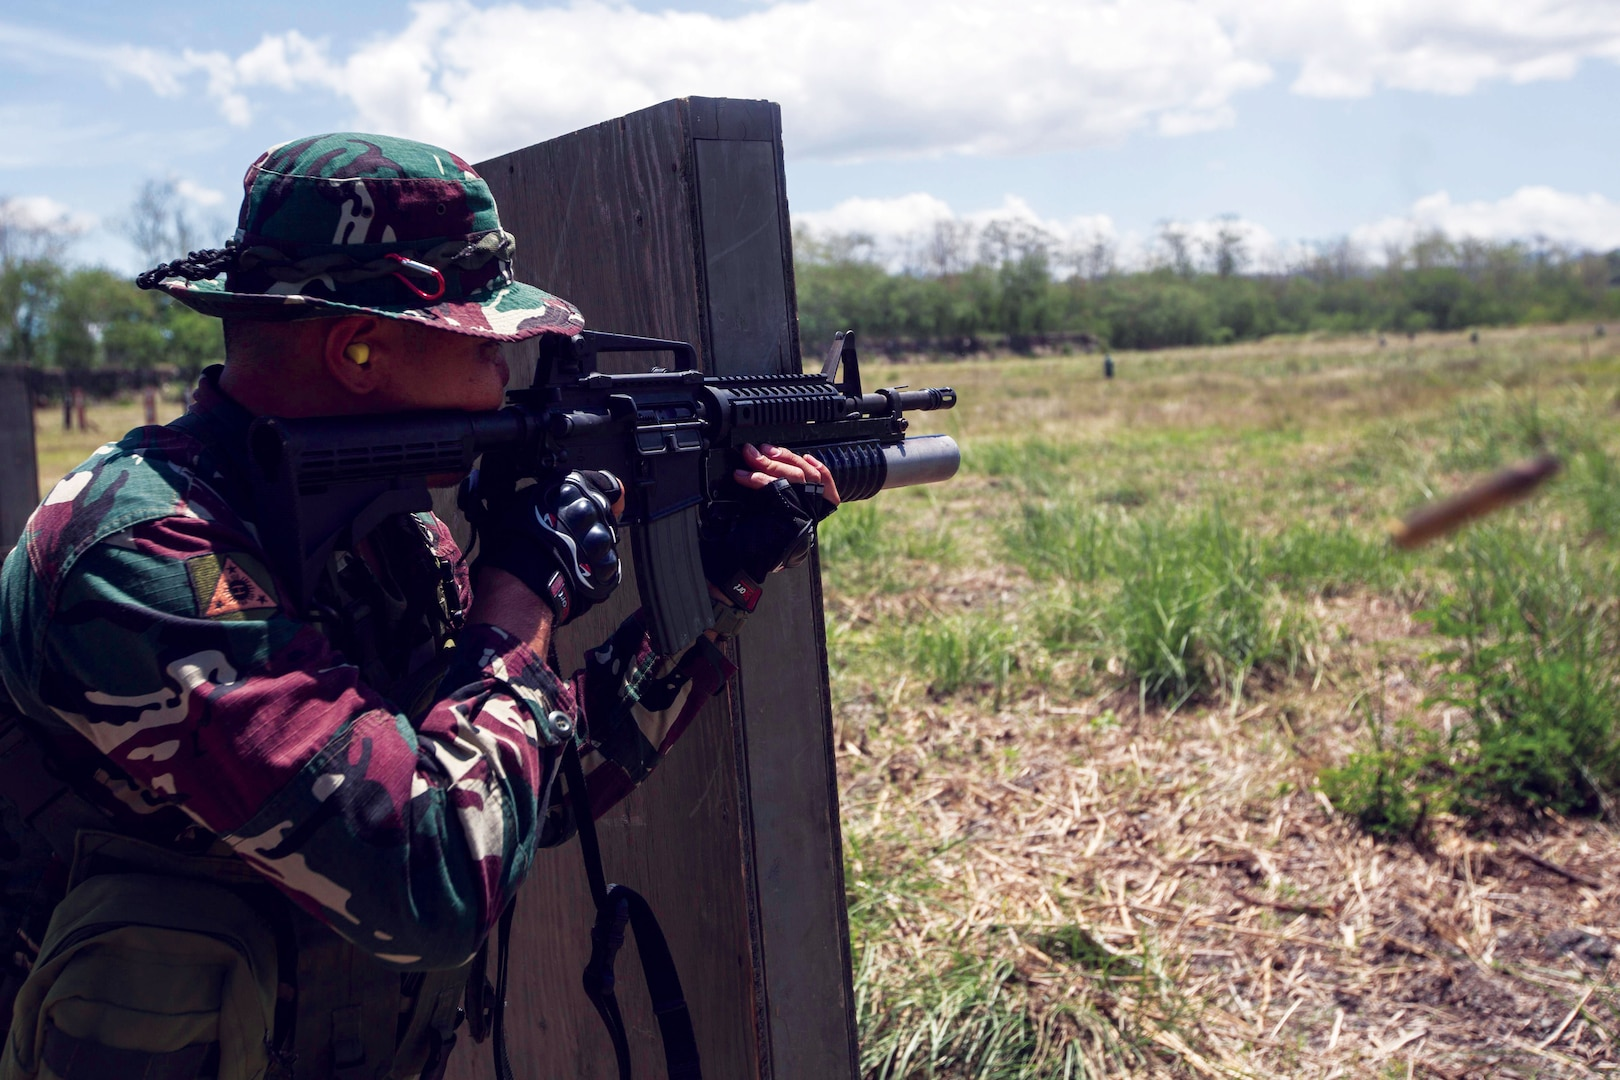 In May 2017, a Filipino solder participates counterterrorism training in the U.S.—Philippines Balikatan Military Exercise at Fort Magsaysay in the Philippines. (U.S. Marine Corps/Matthew Casbarro)